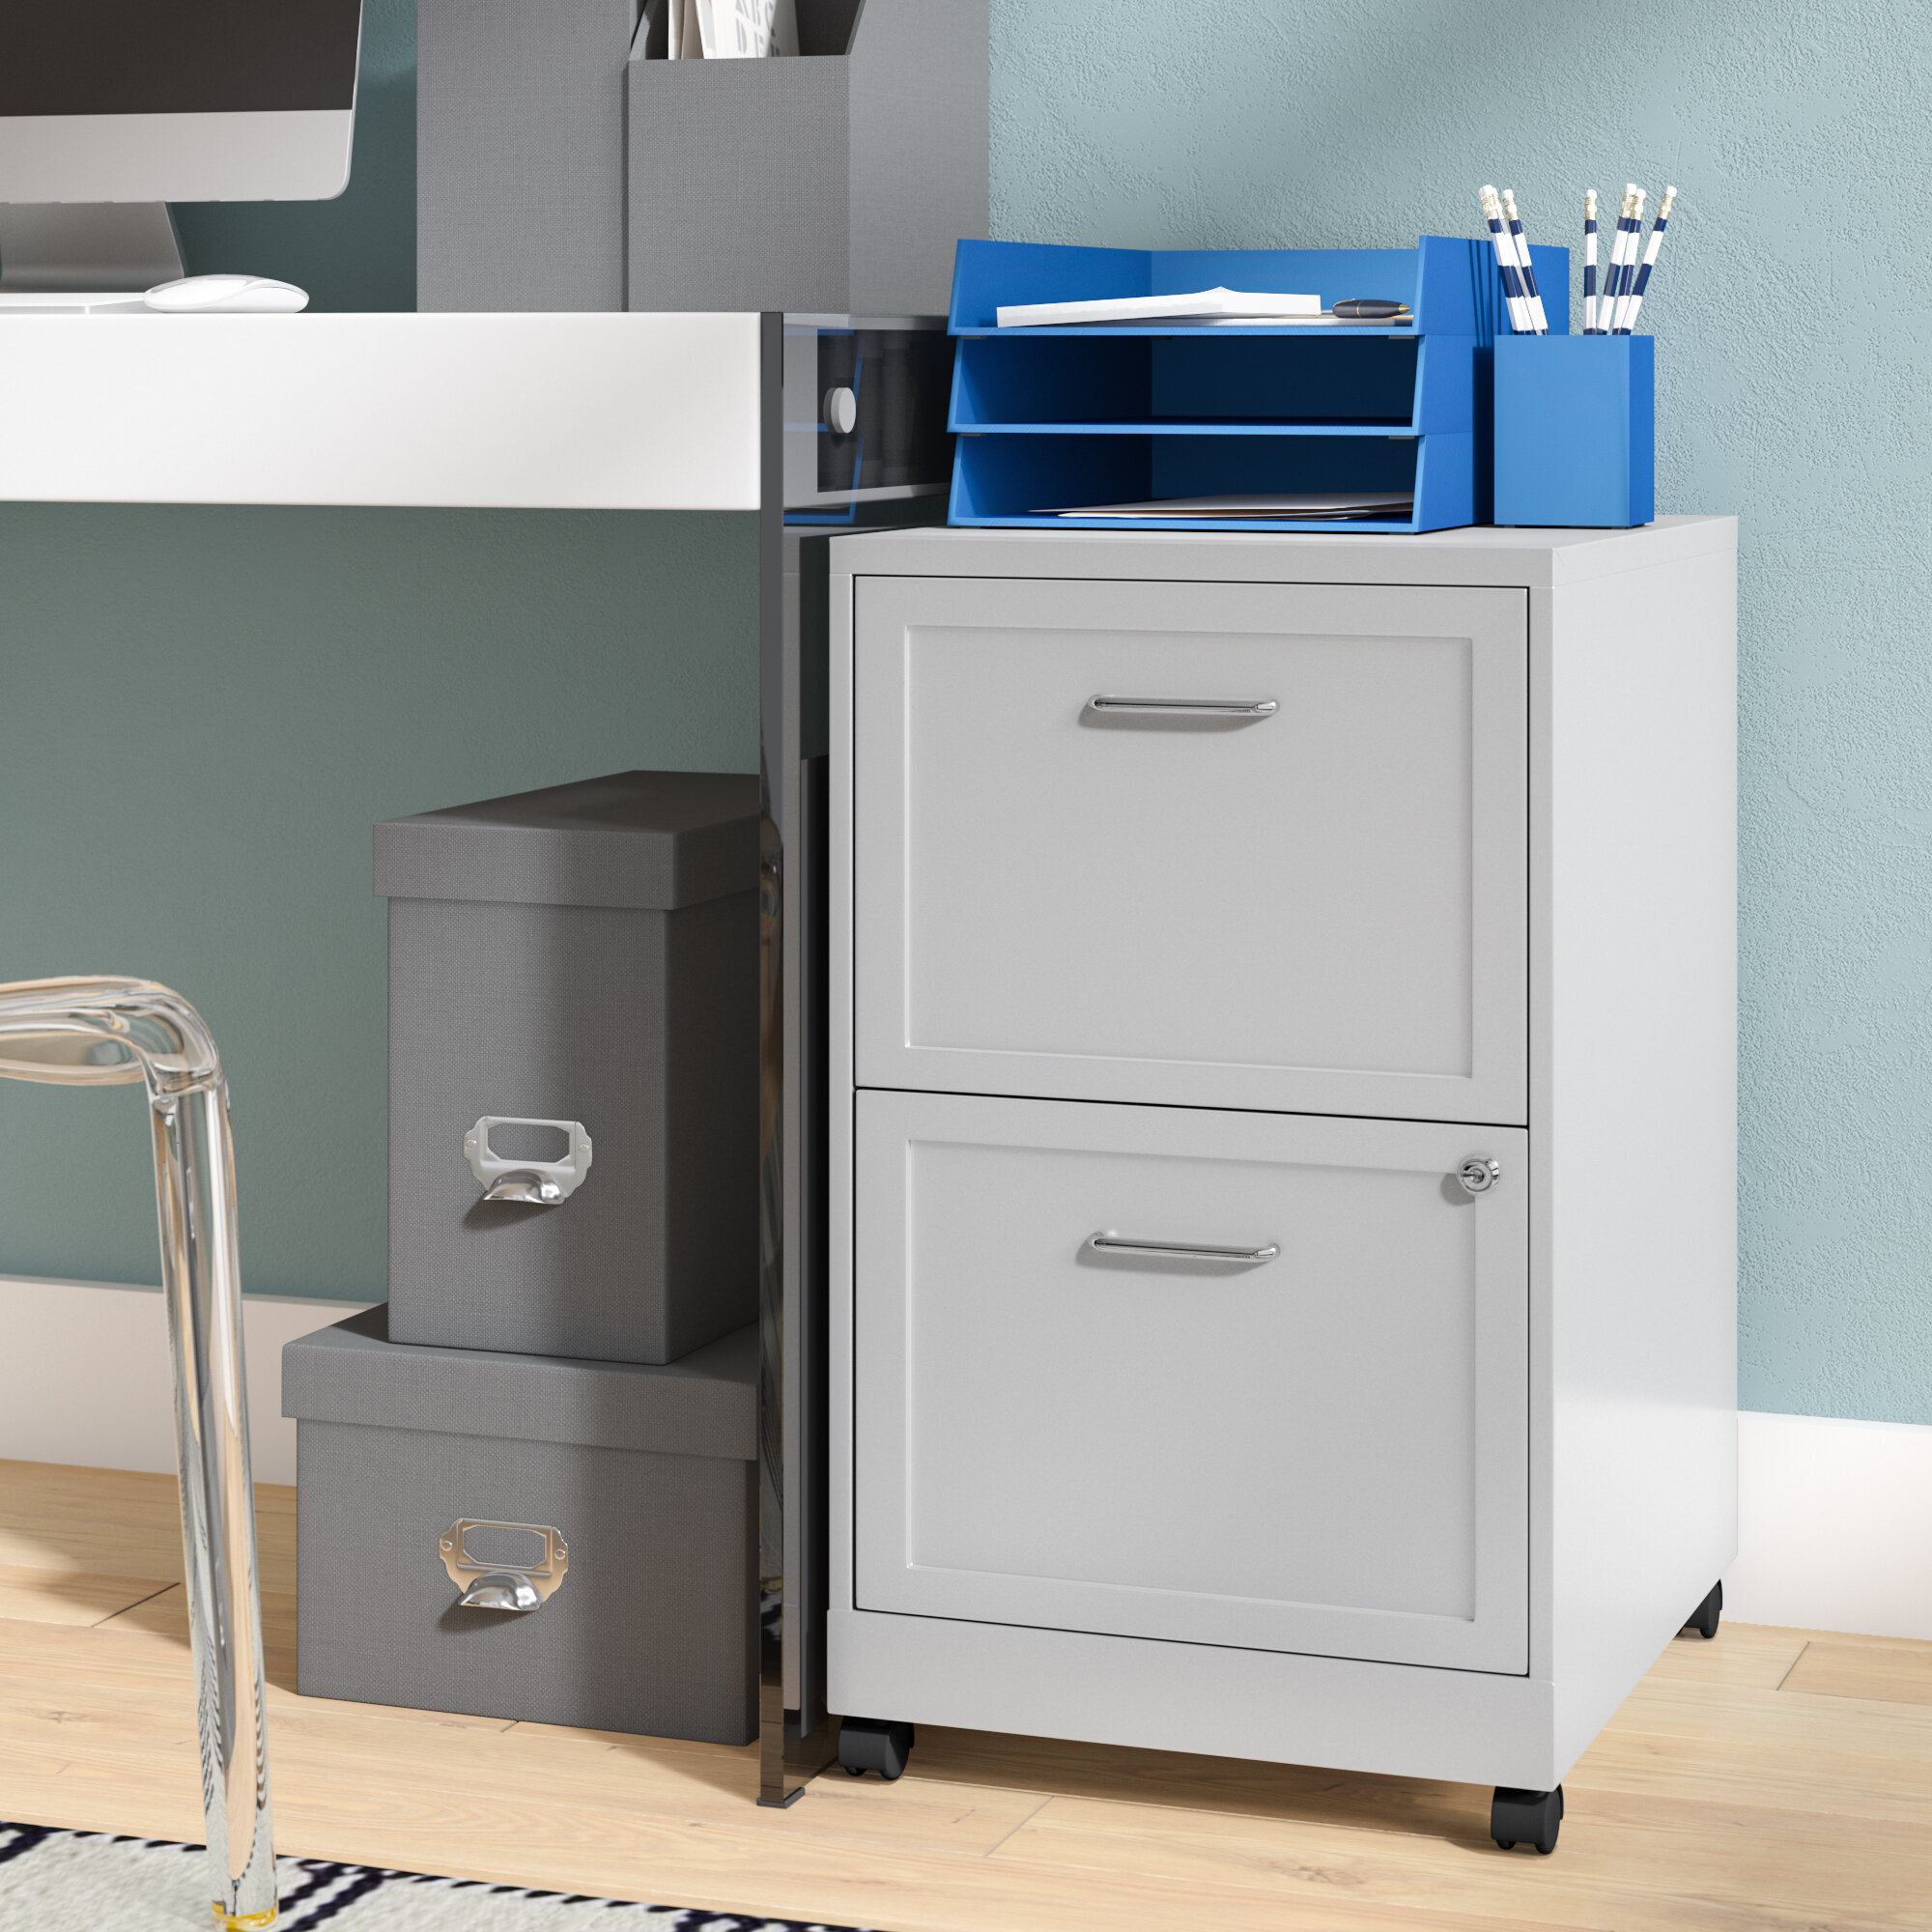 YITAHOME 2-Drawer Mobile File Cabinet with Interlock System,Round Edge and Casters Black Vertical Filing Cabinets Office Drawer for Legal//Letter//A4 Documents Fully Assembled Except Casters